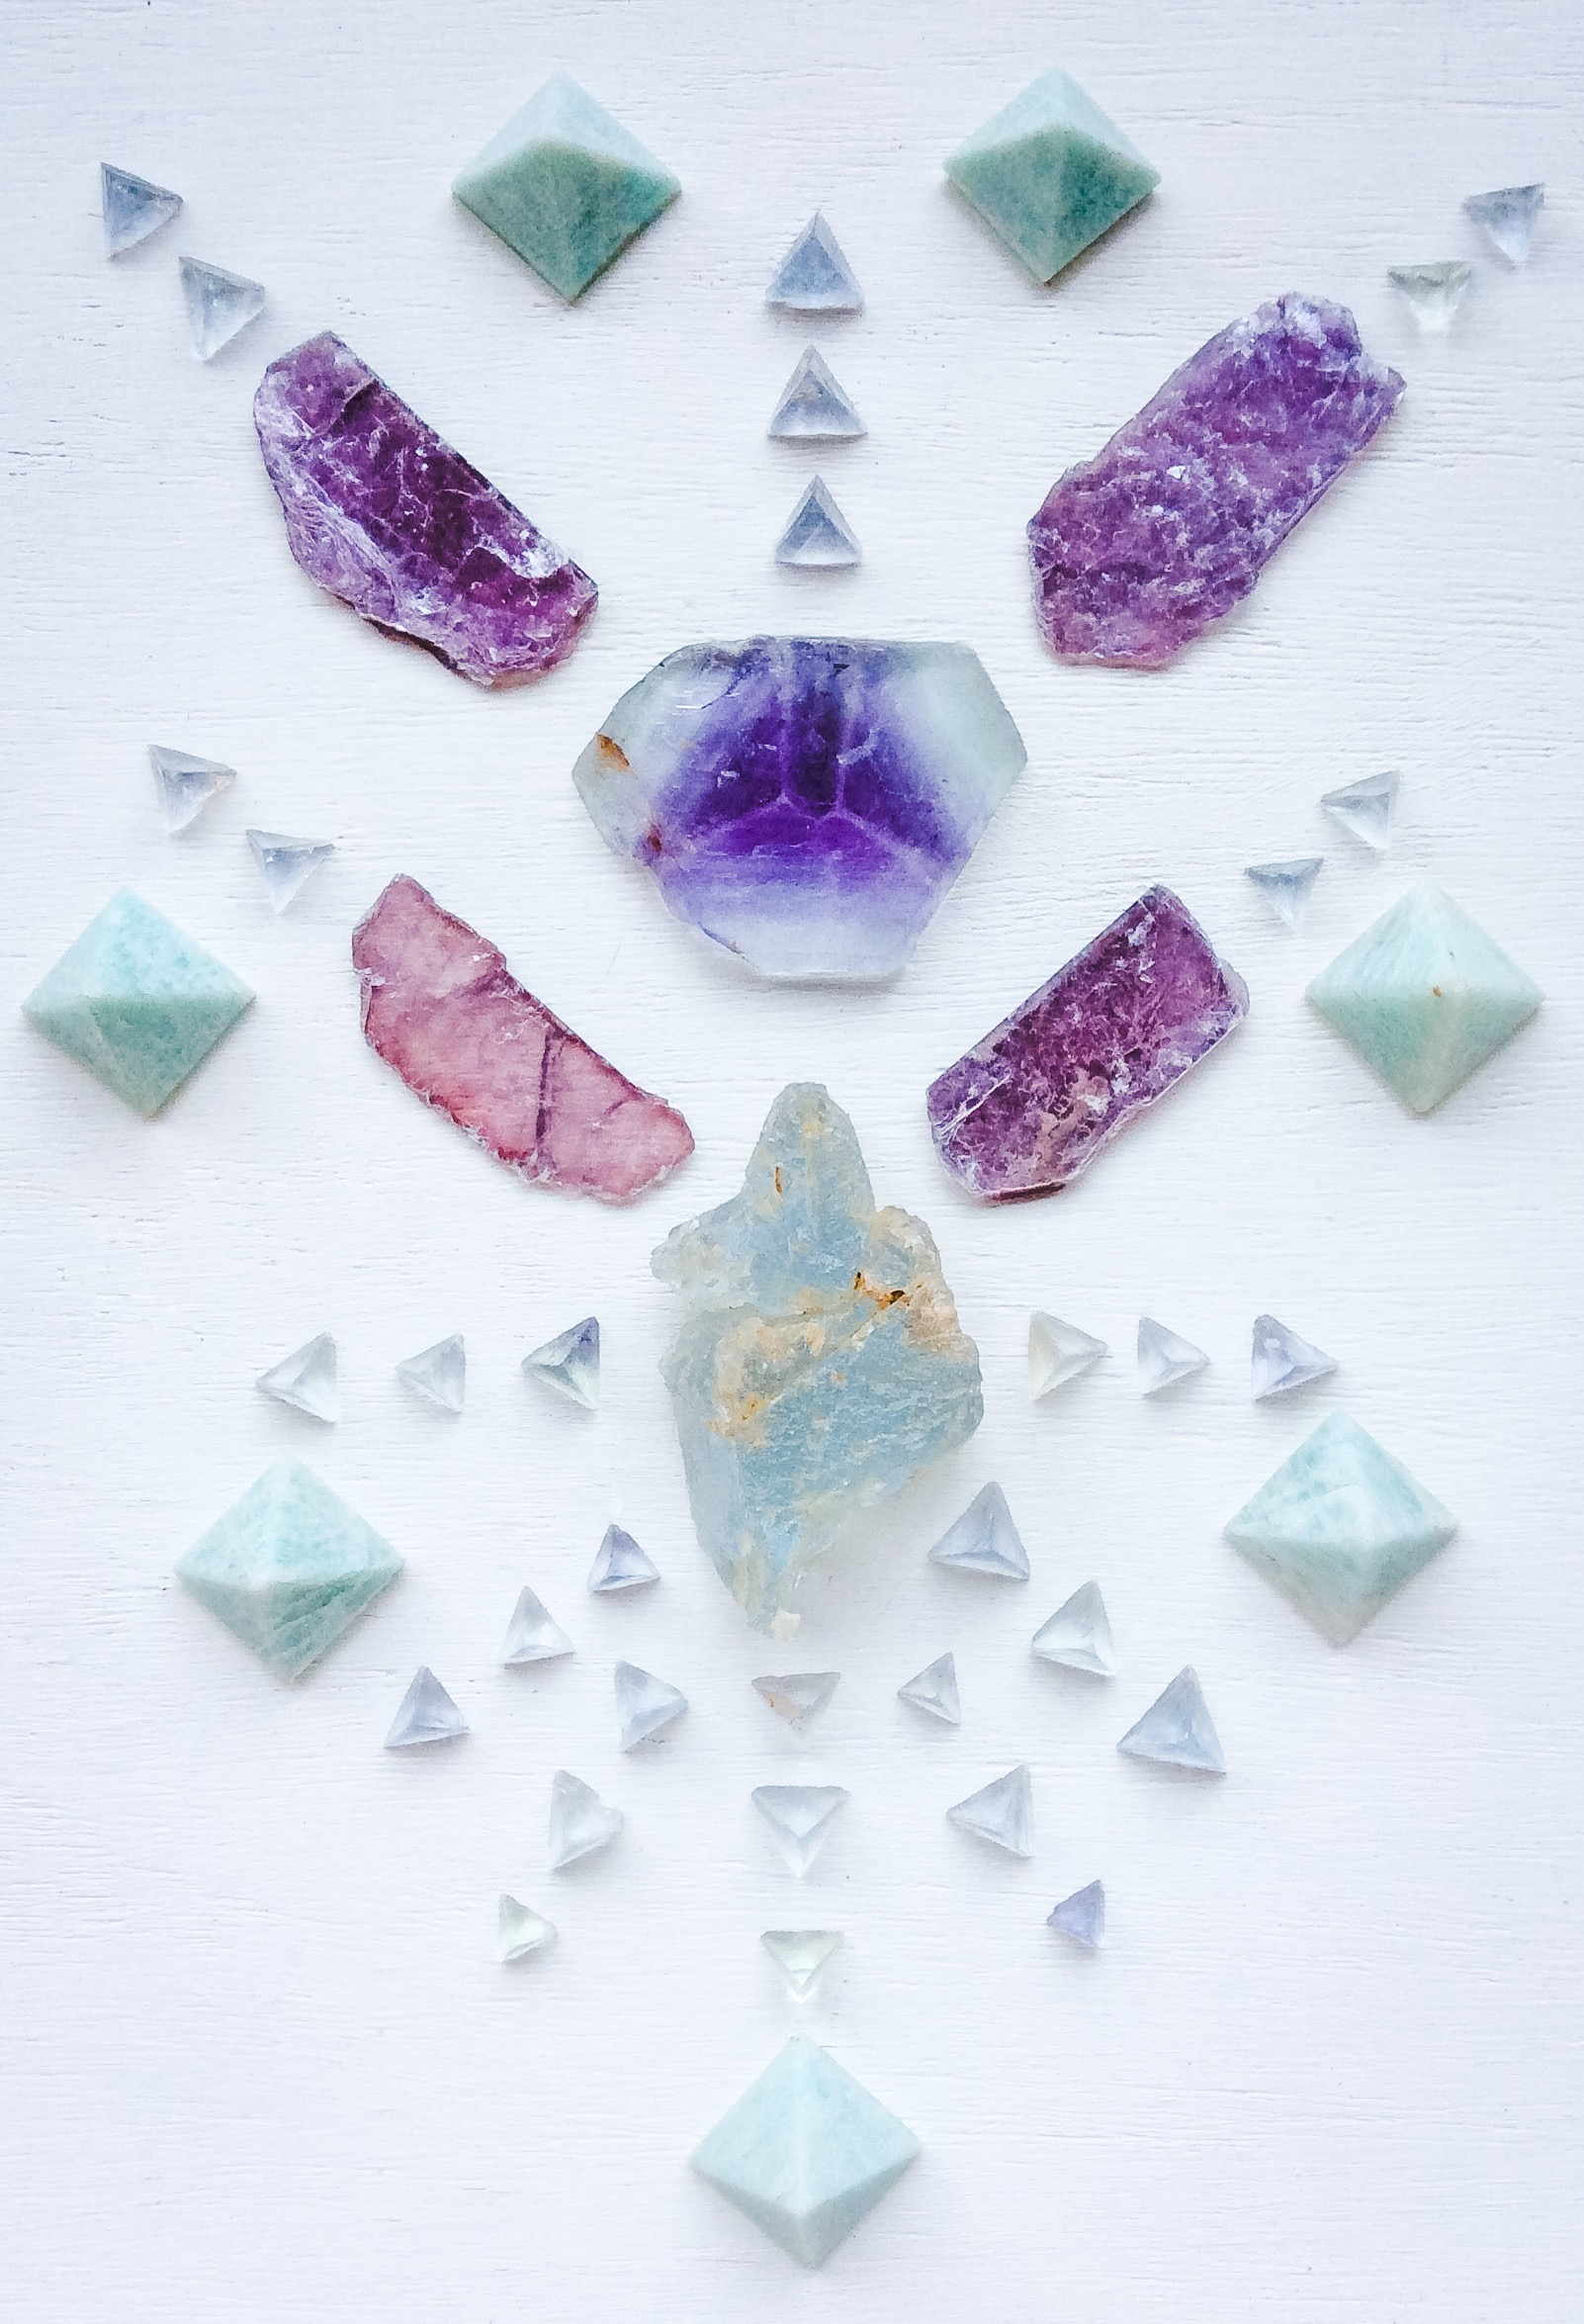 Fluorite, Lepidolite and Amazonite